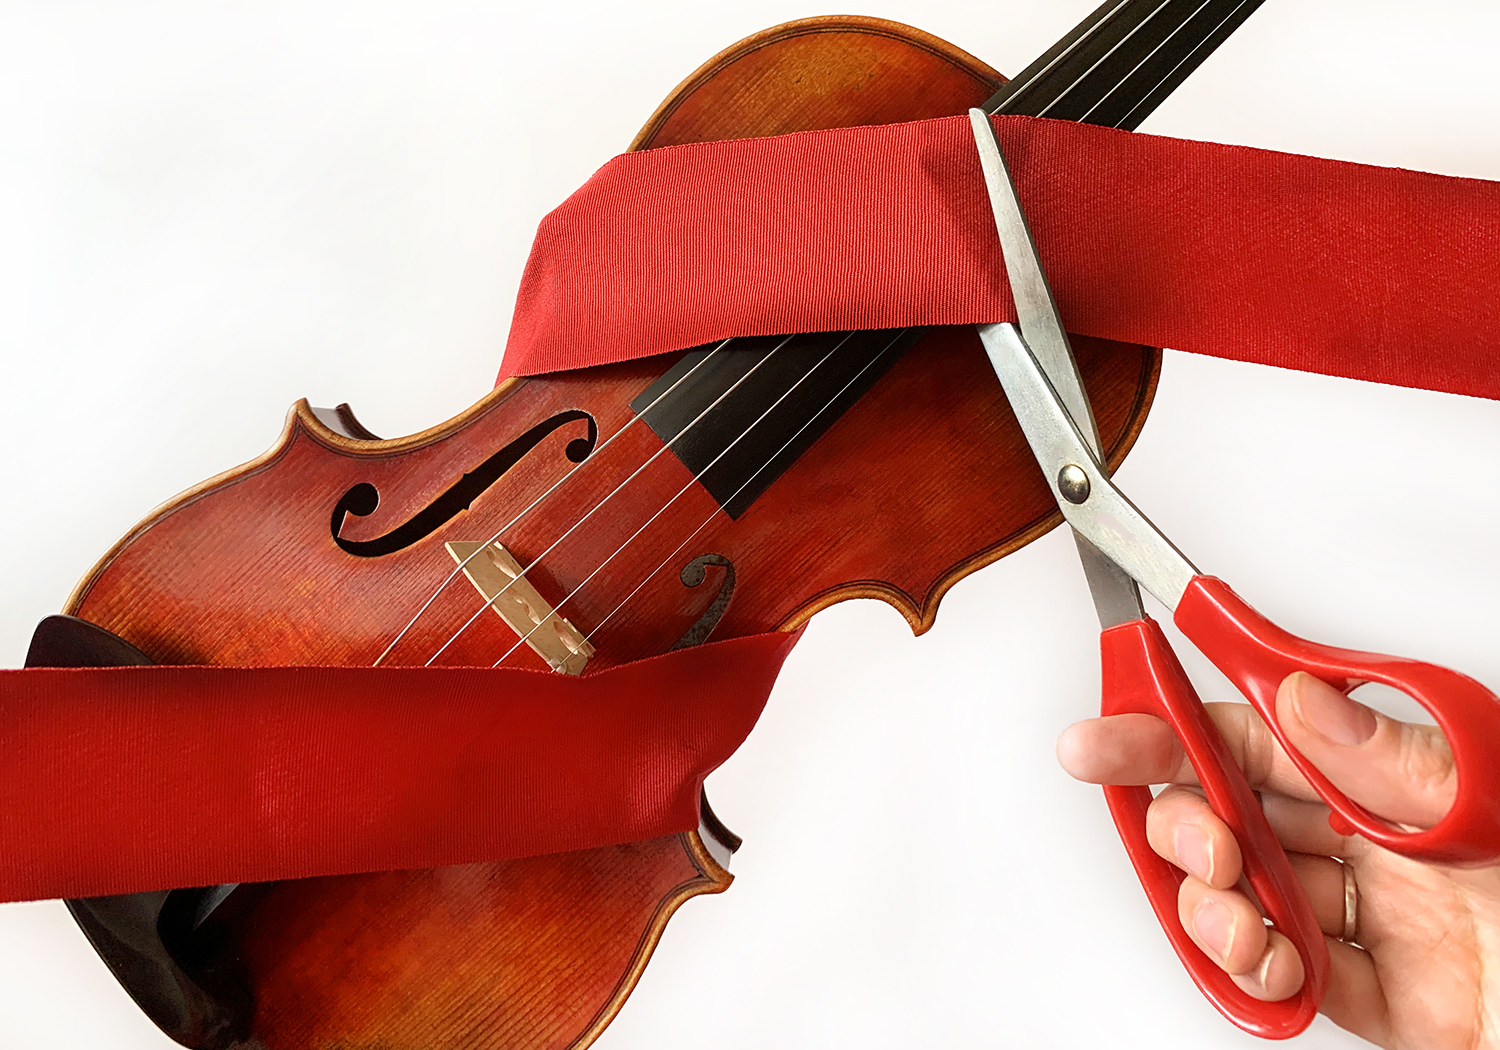 Hand with red handled scissors cutting a red ribbon wrapped around a violin